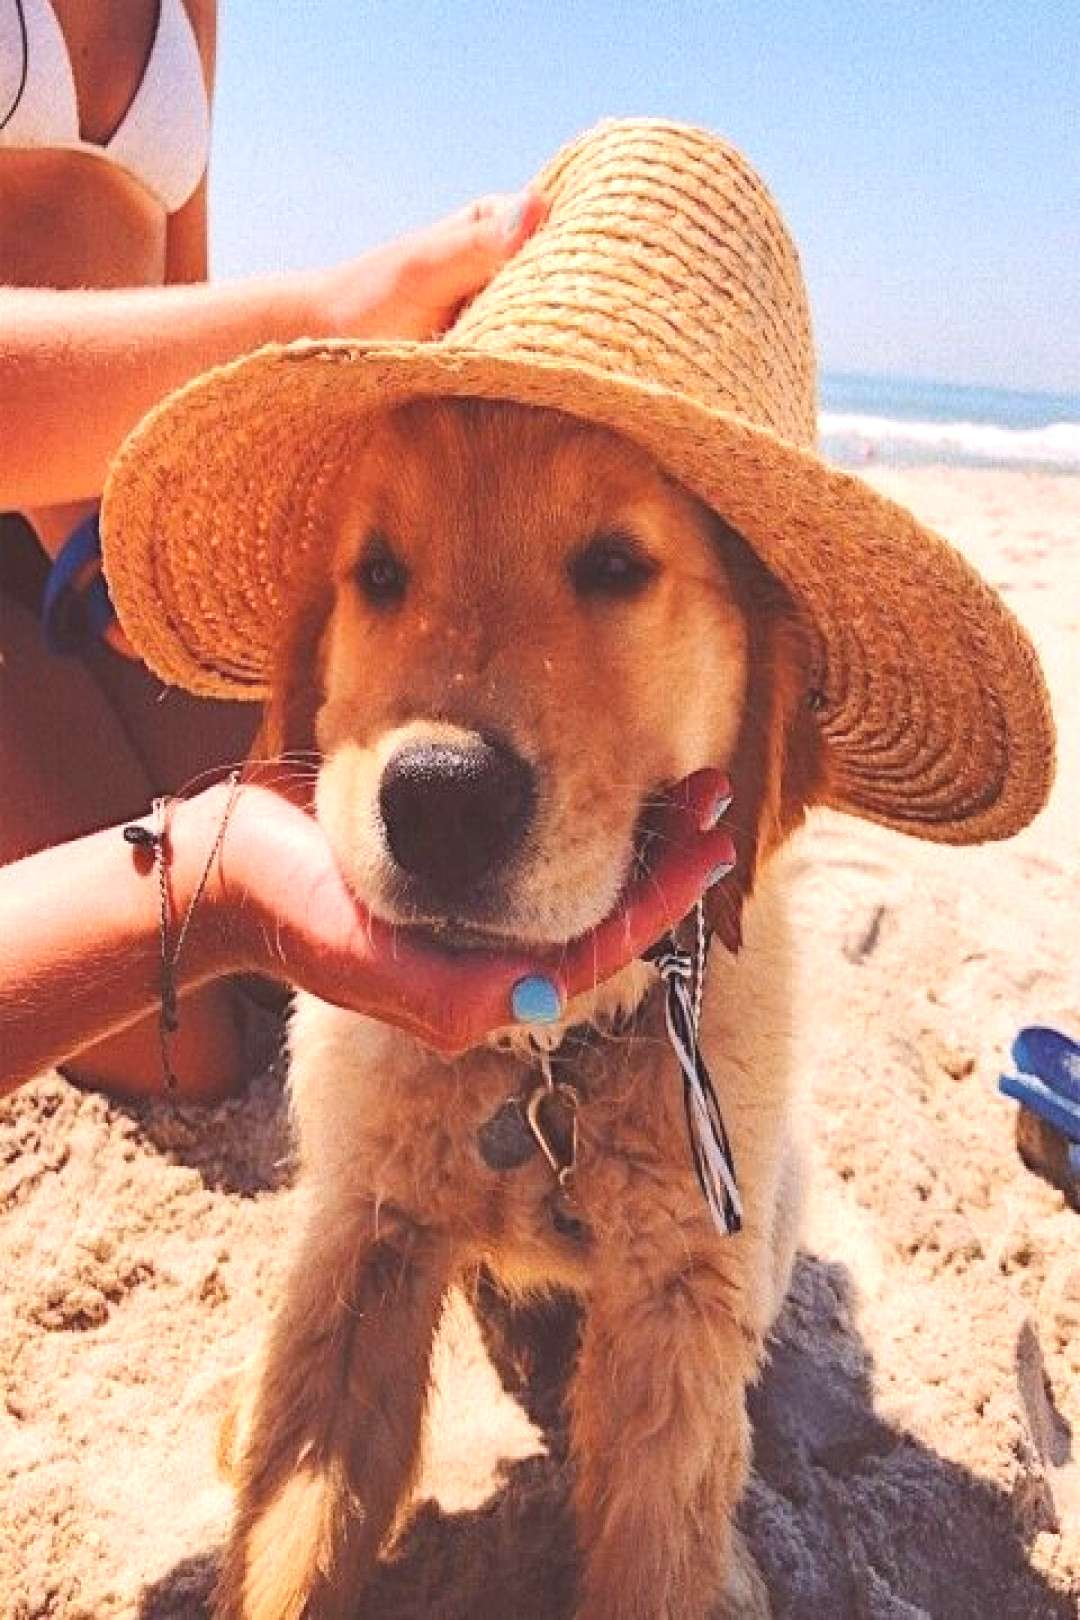 Pin on Puppies This Pin was discovered by Grace Margaret. Discover (and save!) your own Pins on Pin